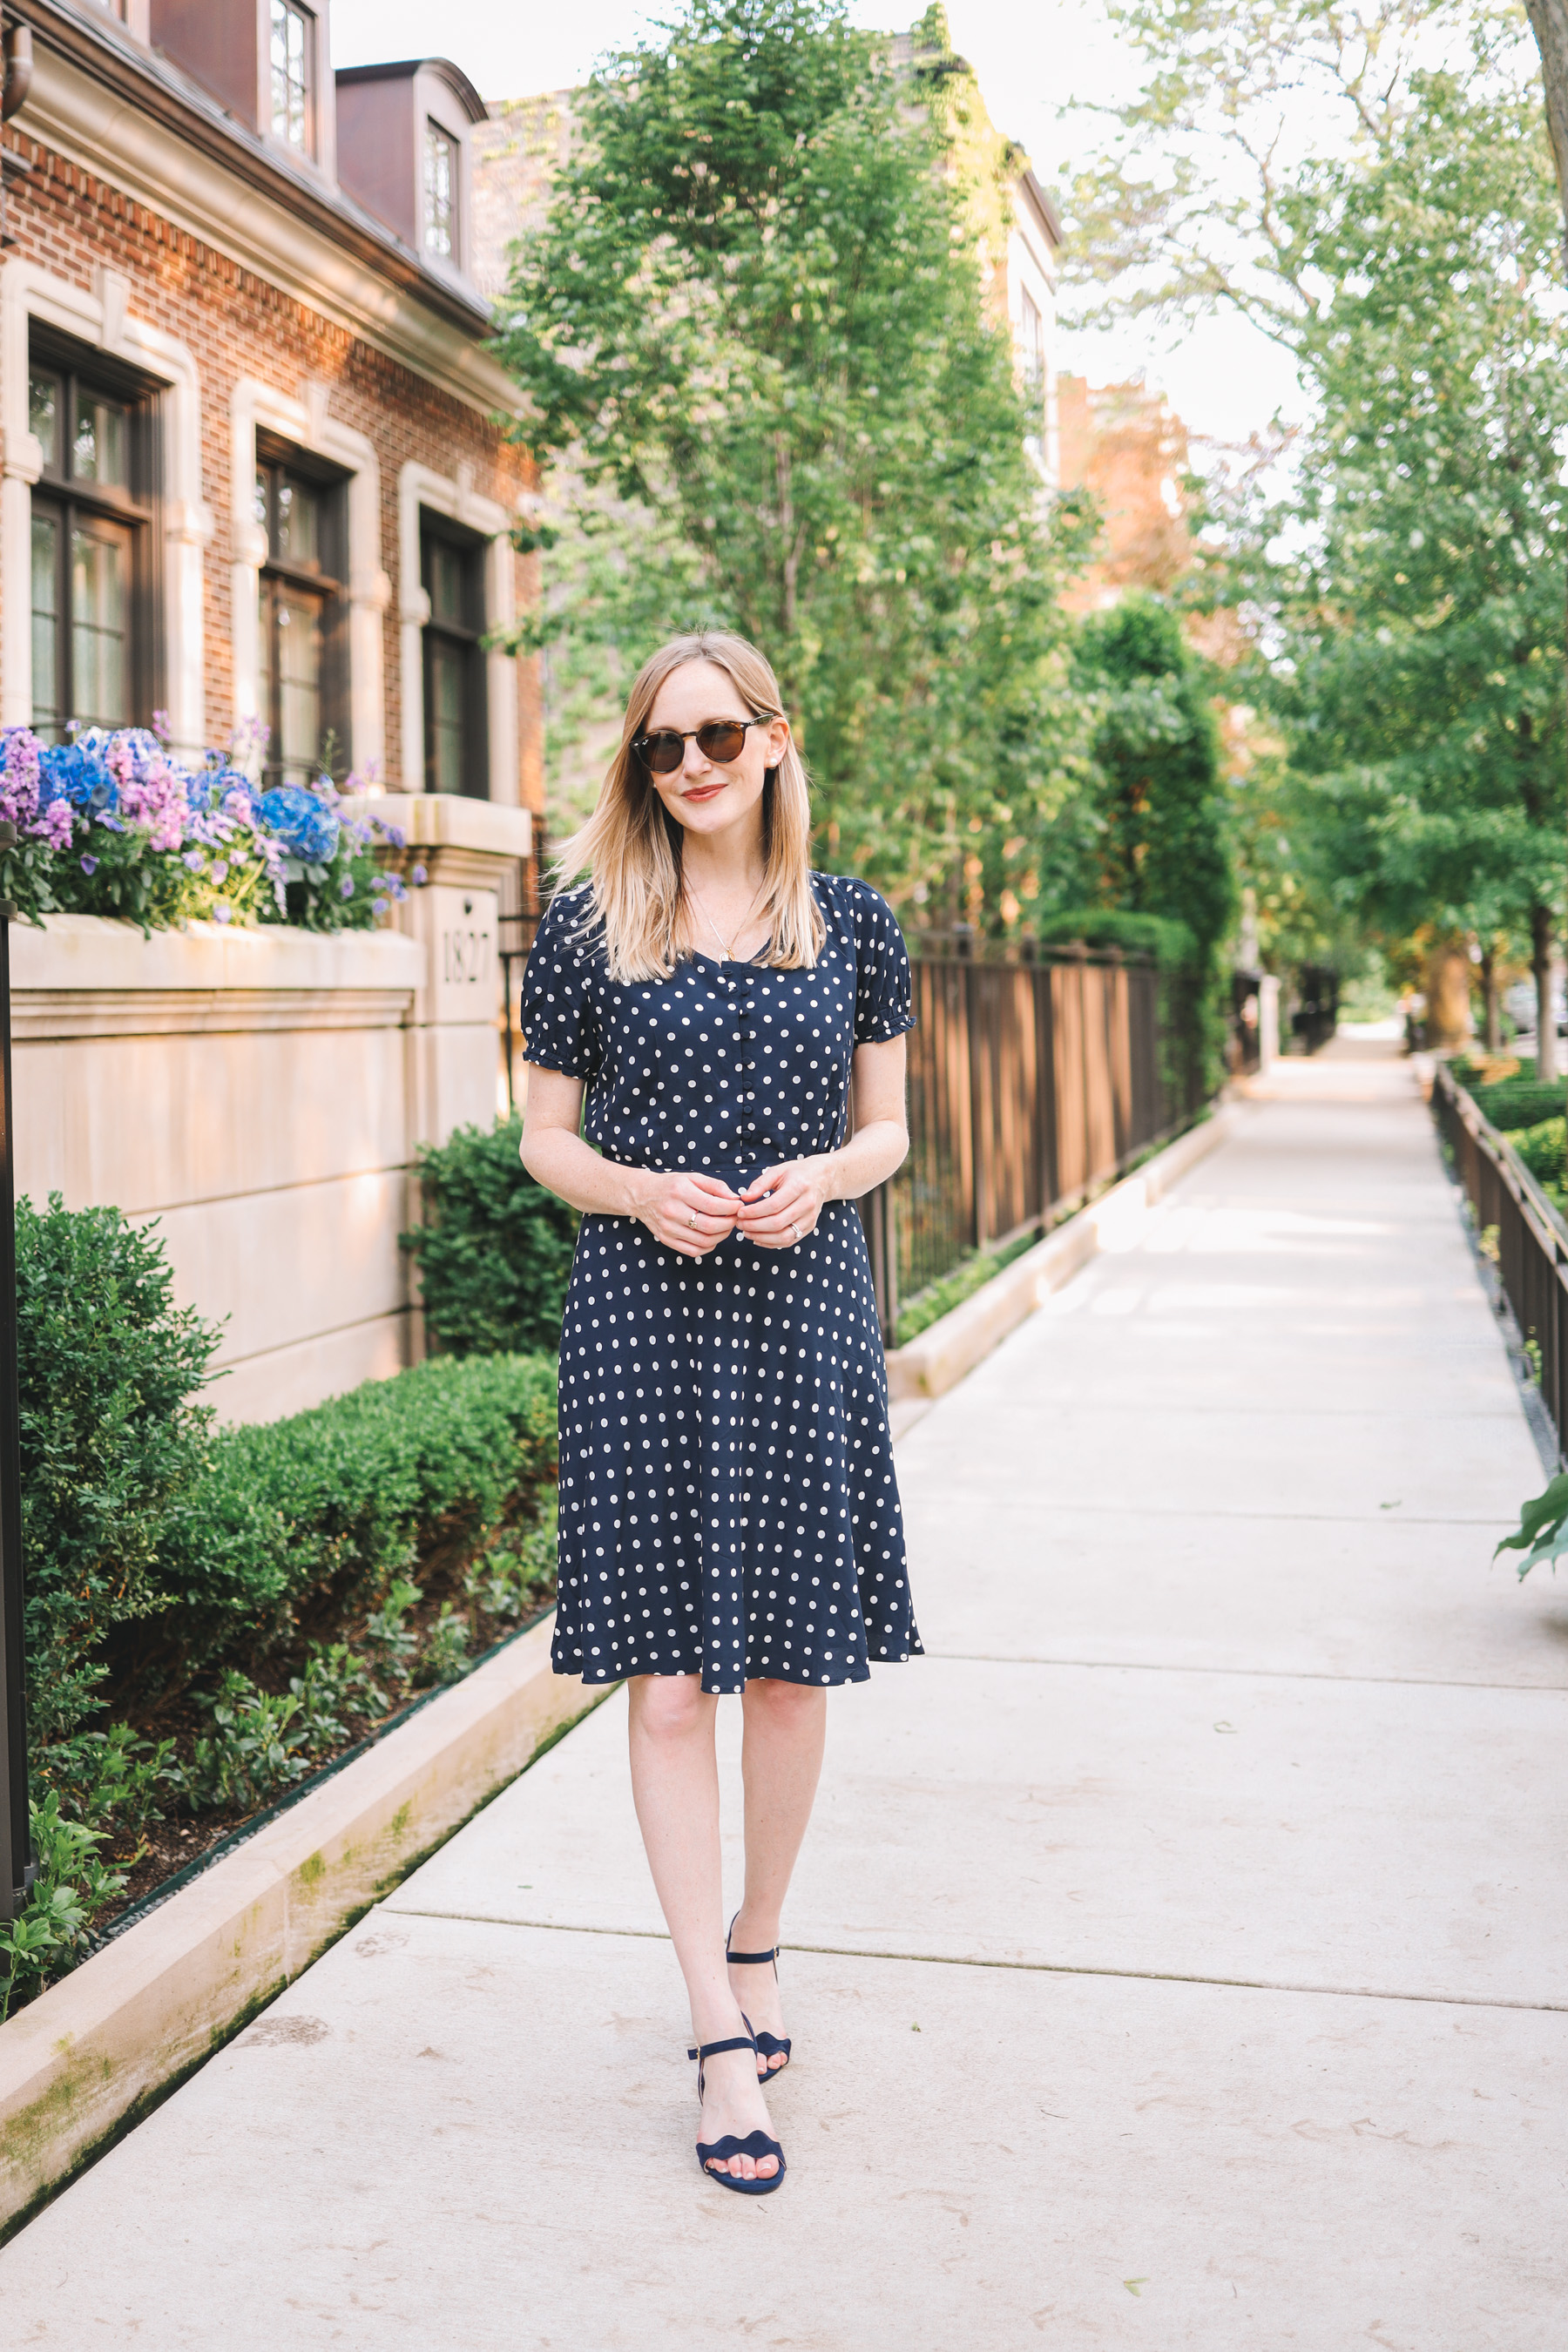 Kelly Larkin's outfit details: Navy Polka Dot Dress / Patricia Green Scalloped Sandals/ Stampled Initial Necklace